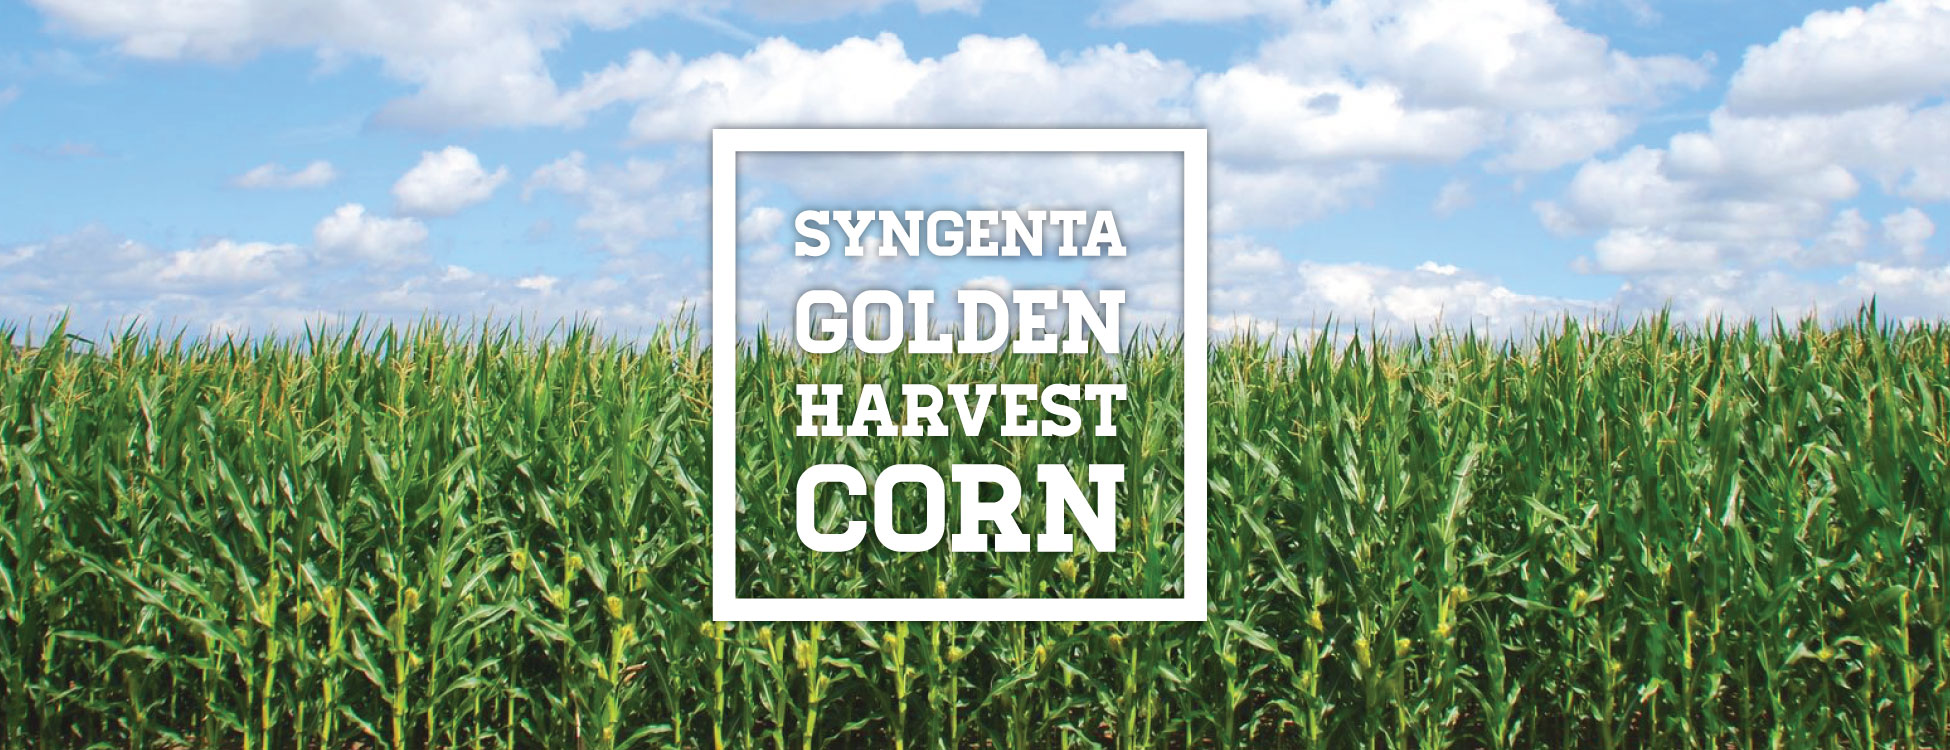 Syngenta Golden Harvest Corn